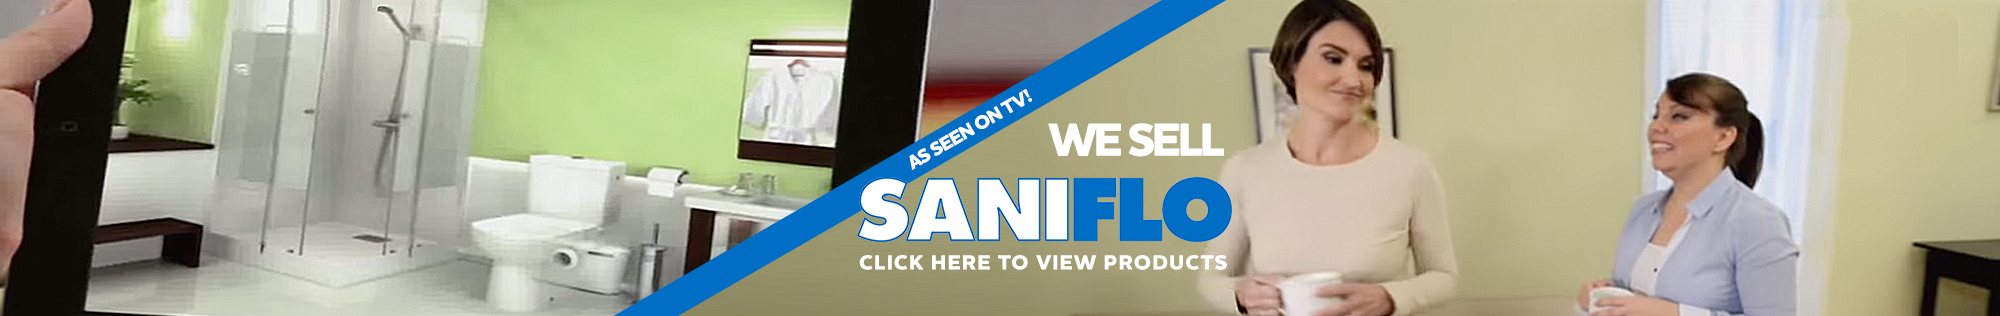 We Sell Saniflo - As Seen on TV! Click here to view products